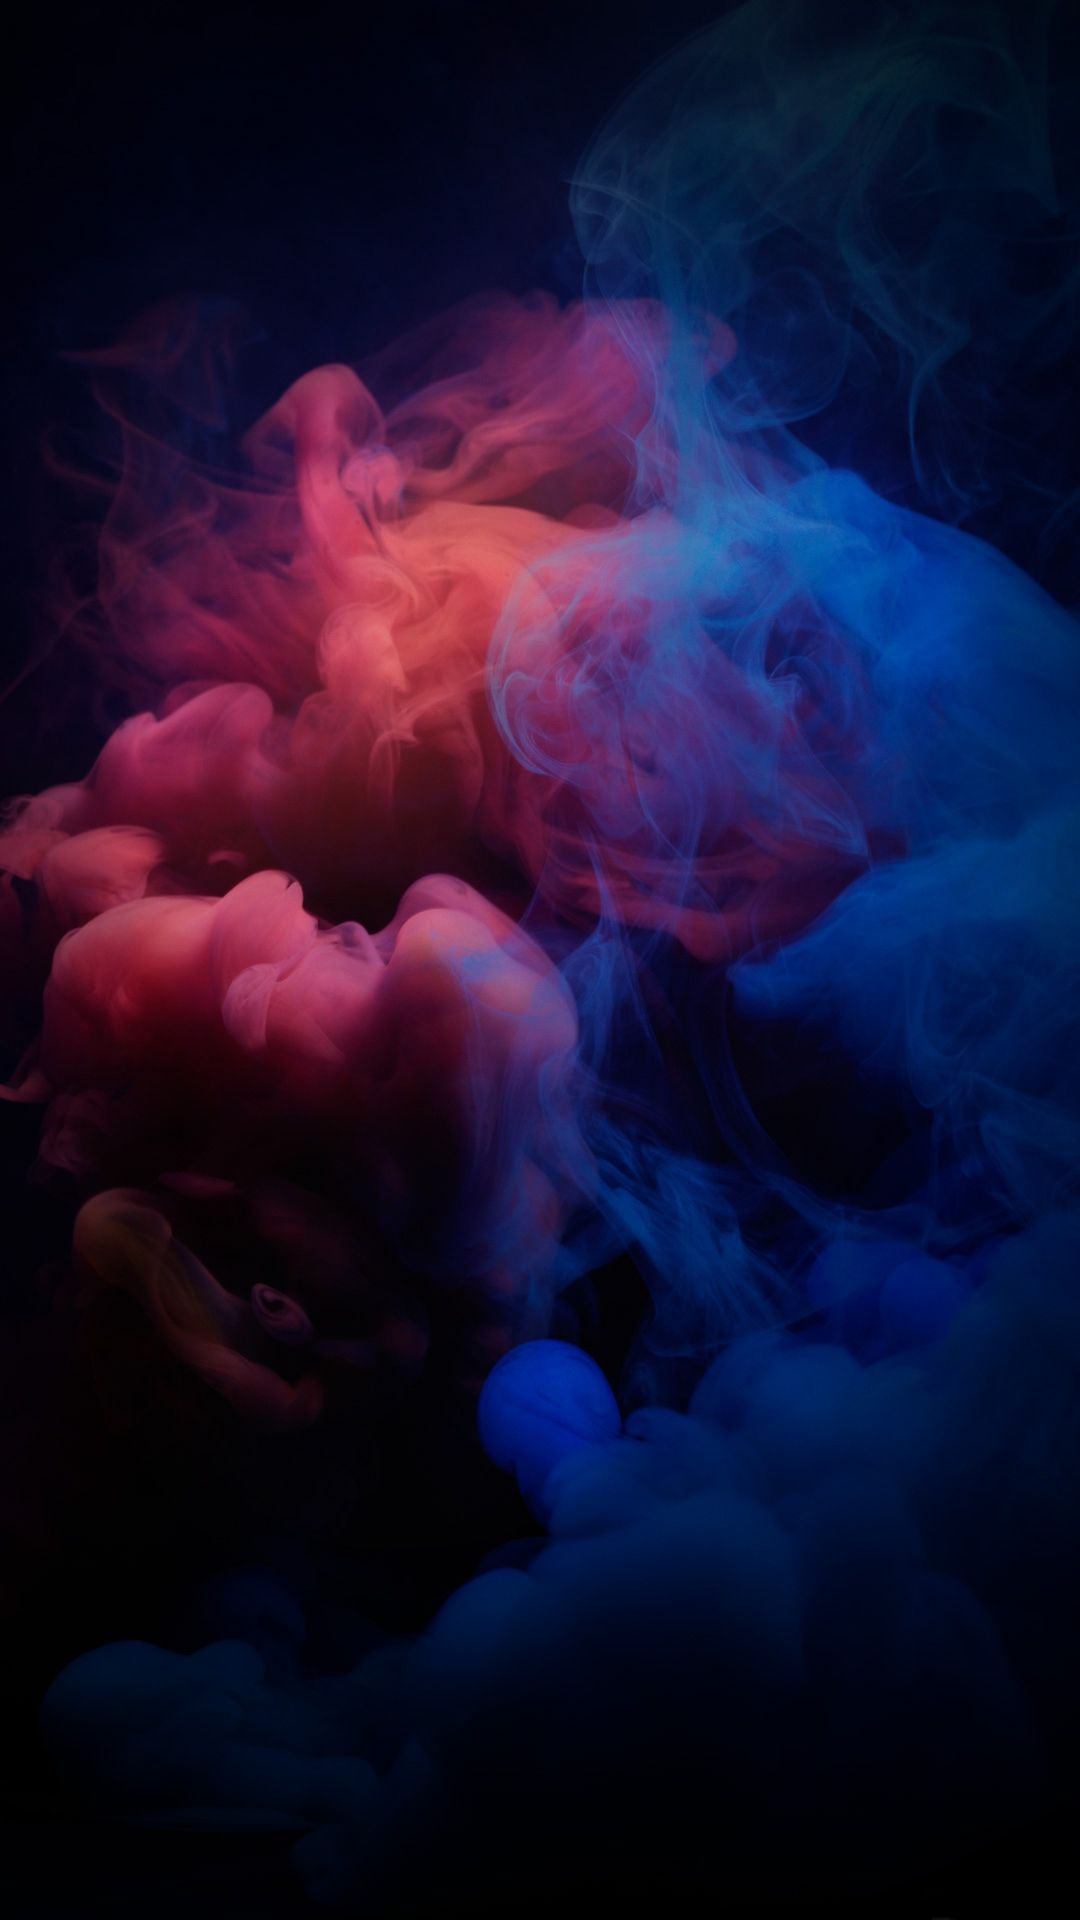 Smoke red blue dark wallpaper 1080x1920 2019 - Dark smoking wallpapers ...